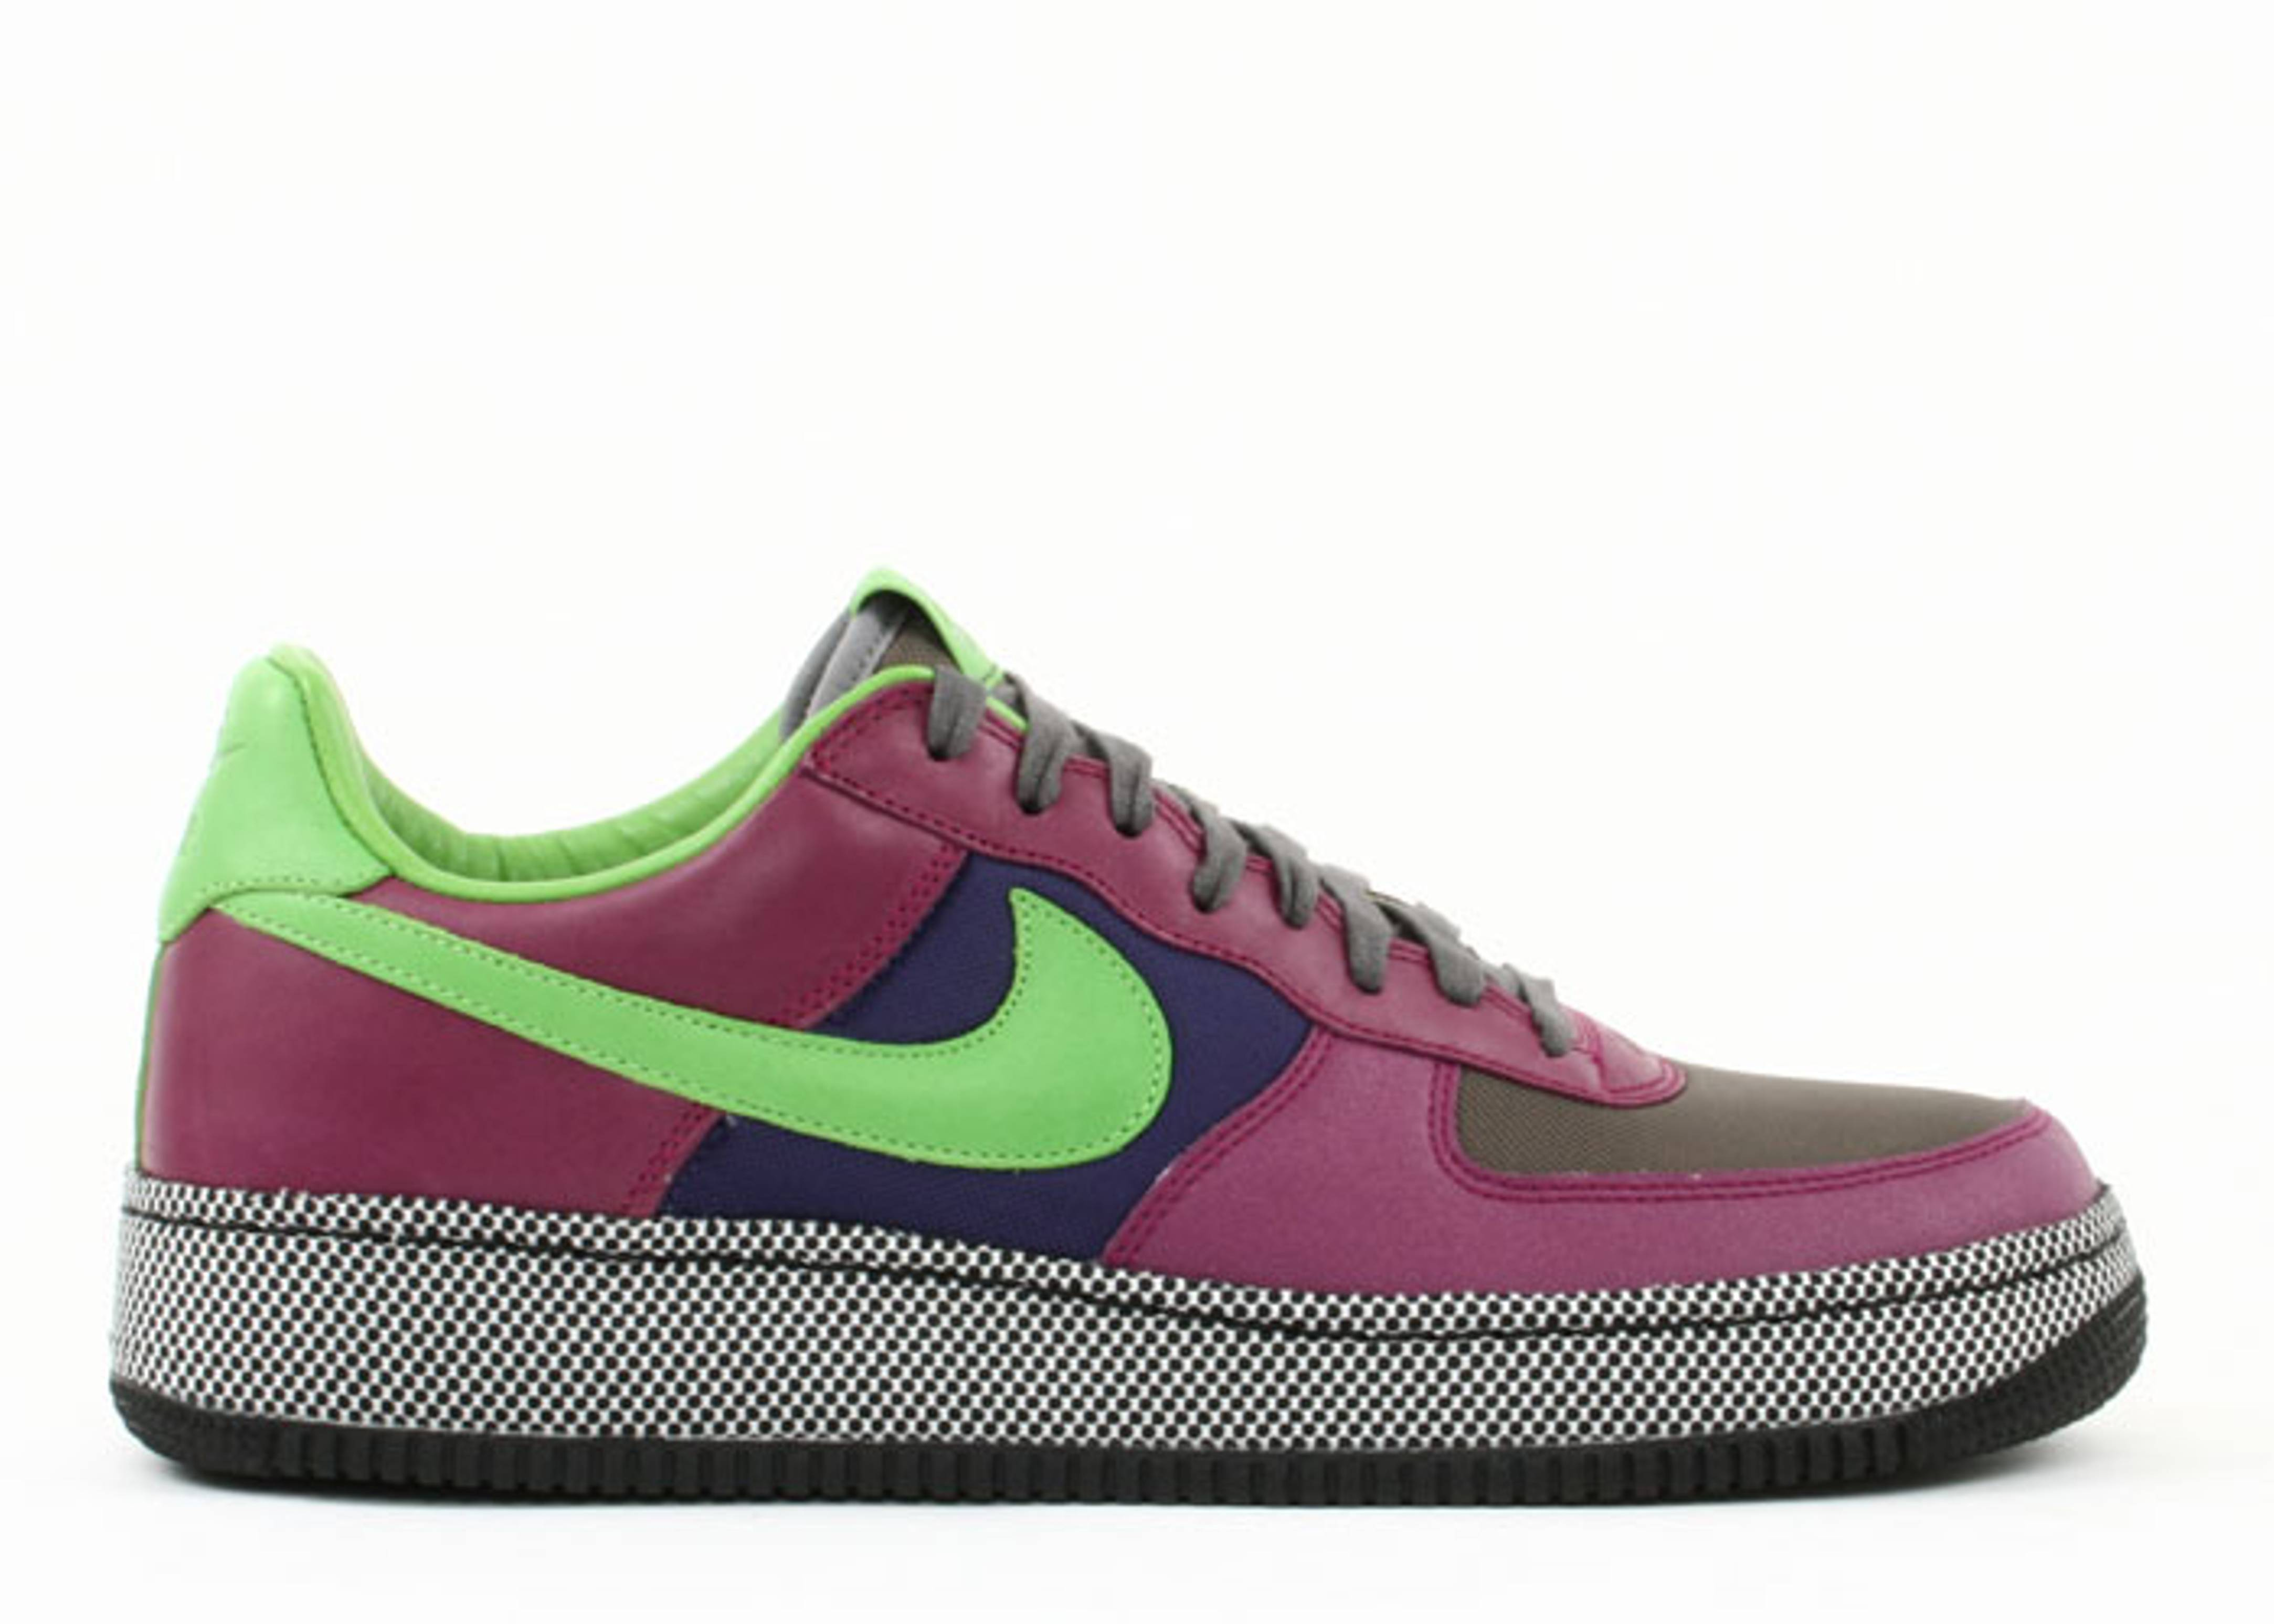 16a050148e21 Air Force 1 Low Inside Out - Nike - 312486 031 - midnight fog green ...